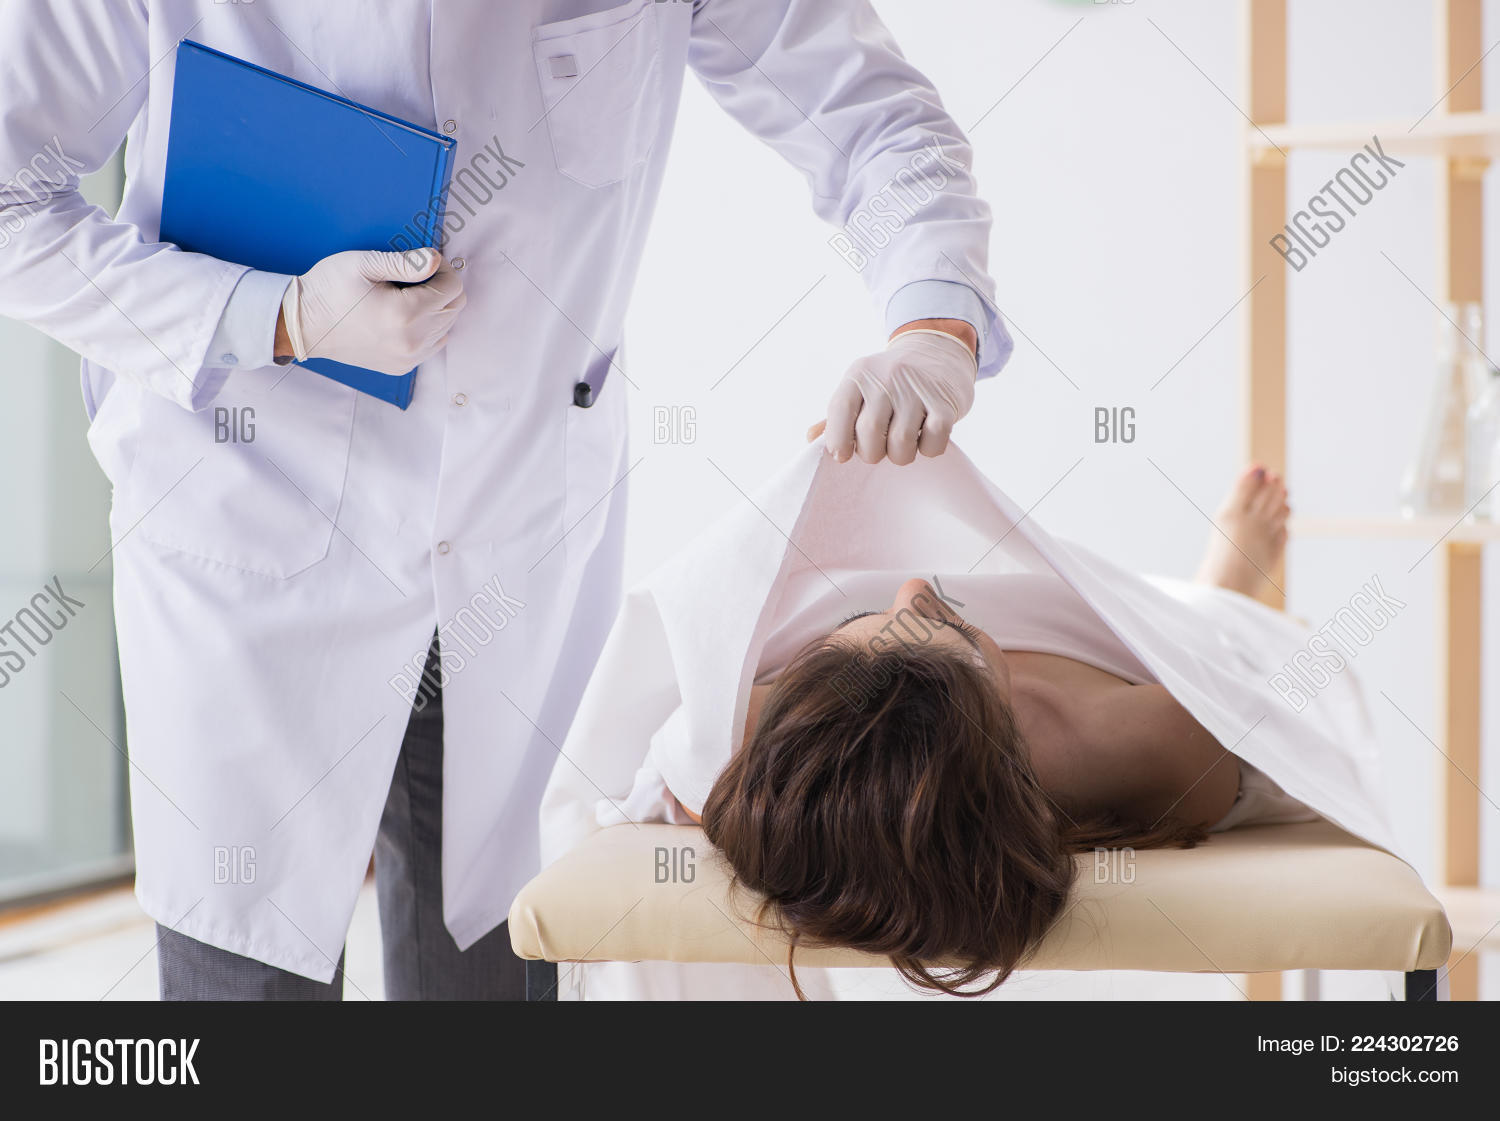 Police Coroner Image & Photo (Free Trial) | Bigstock